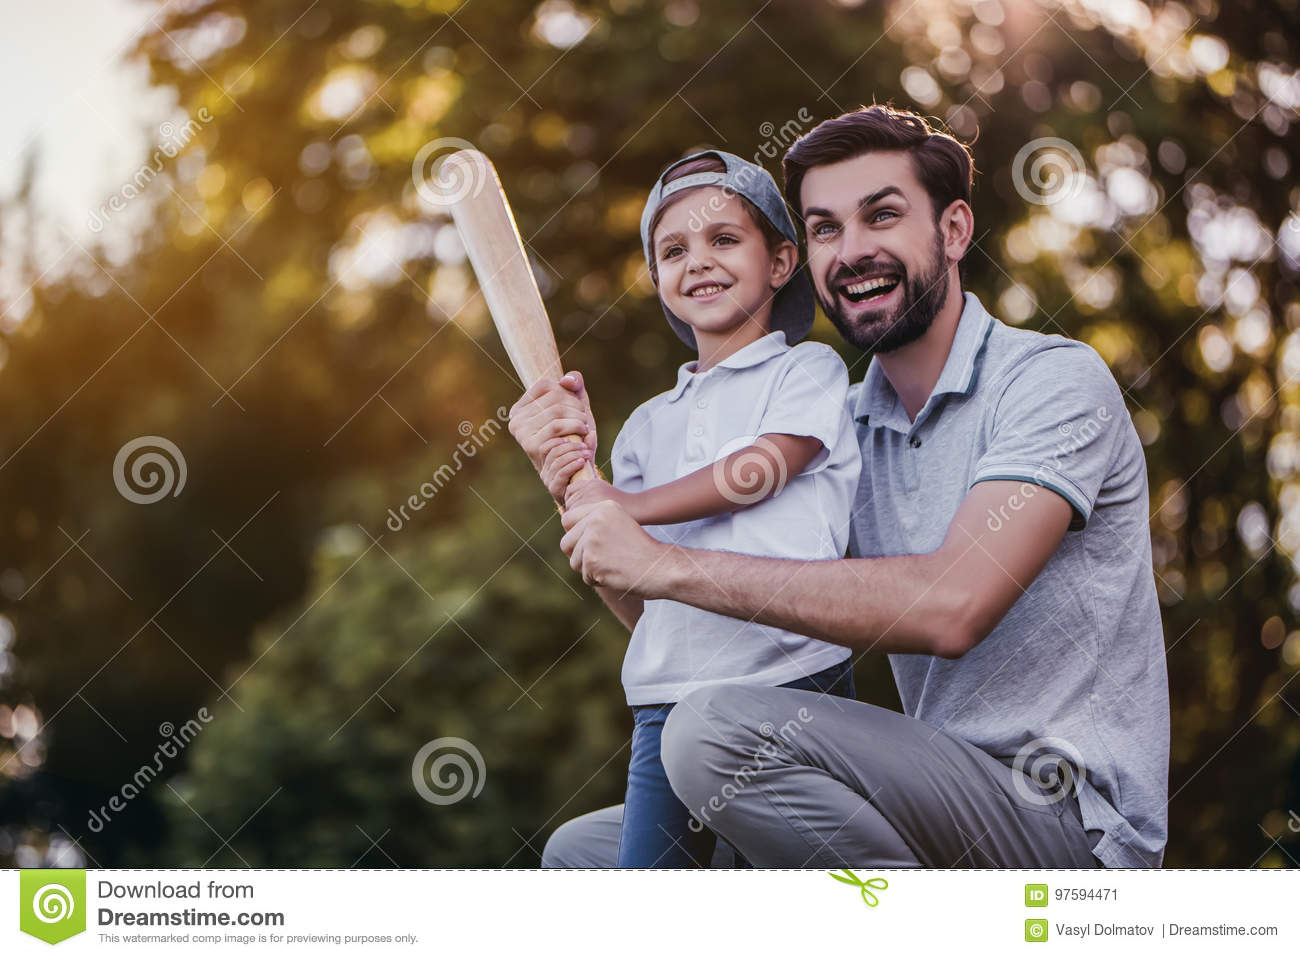 Dad with son playing baseball